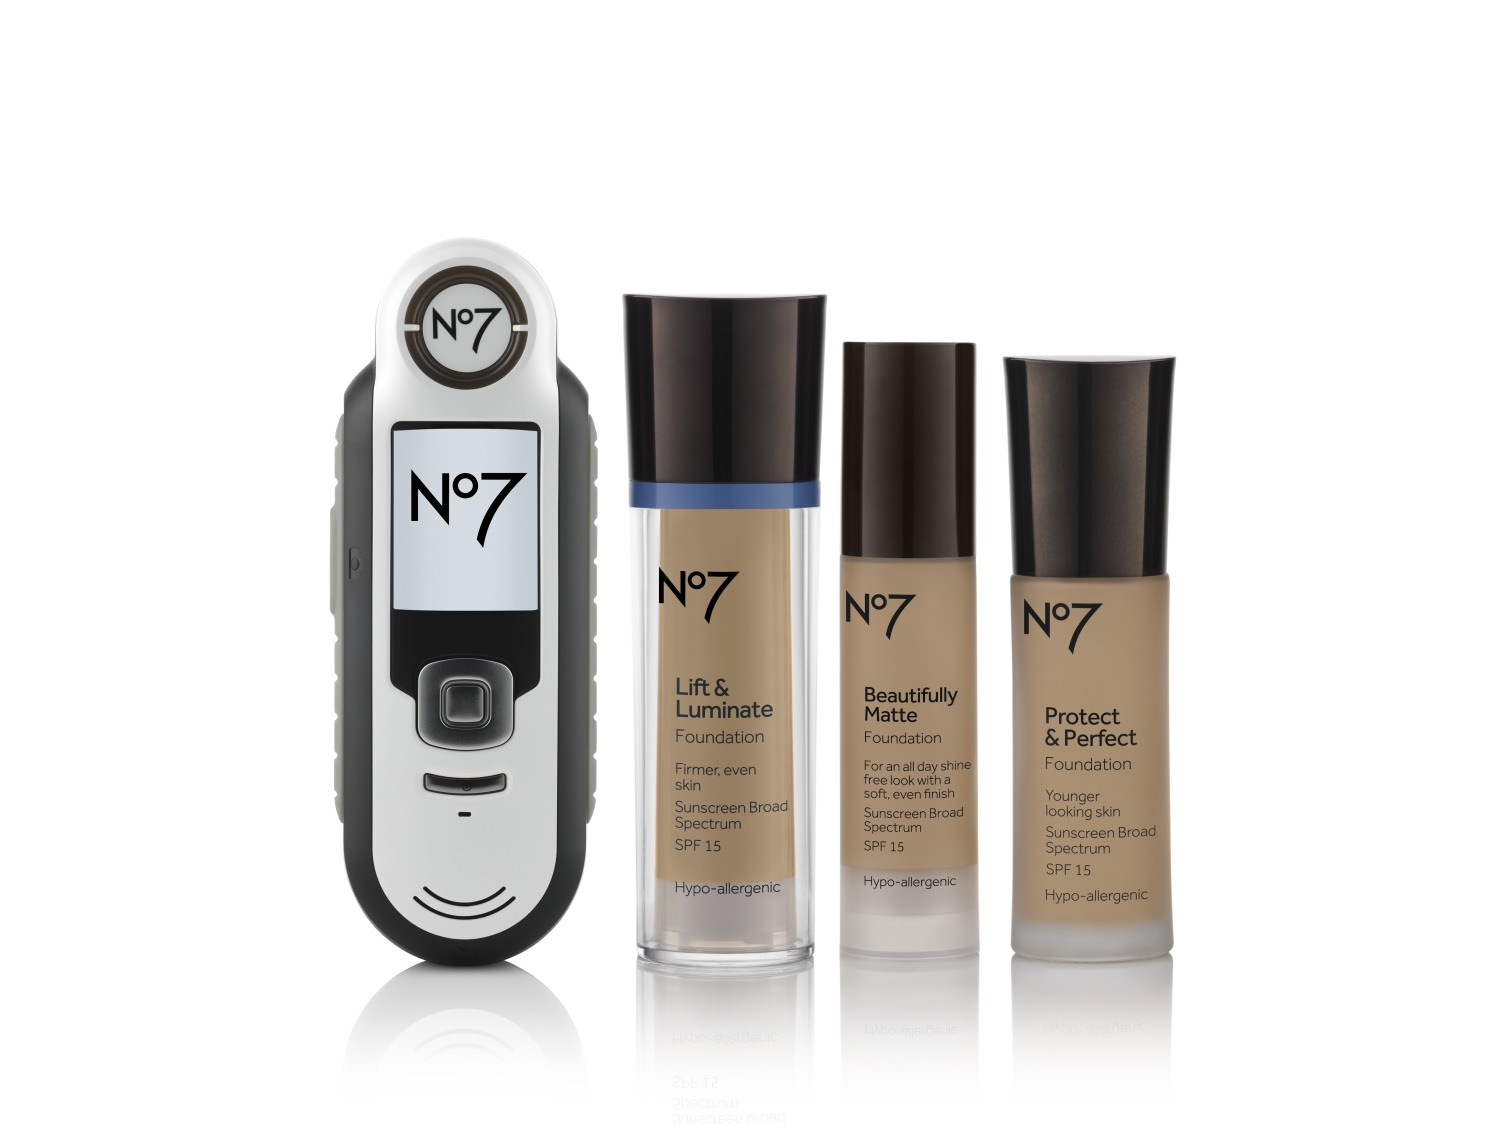 Boots No7 Foundation & Concealer Review PLUS New Match Made Service